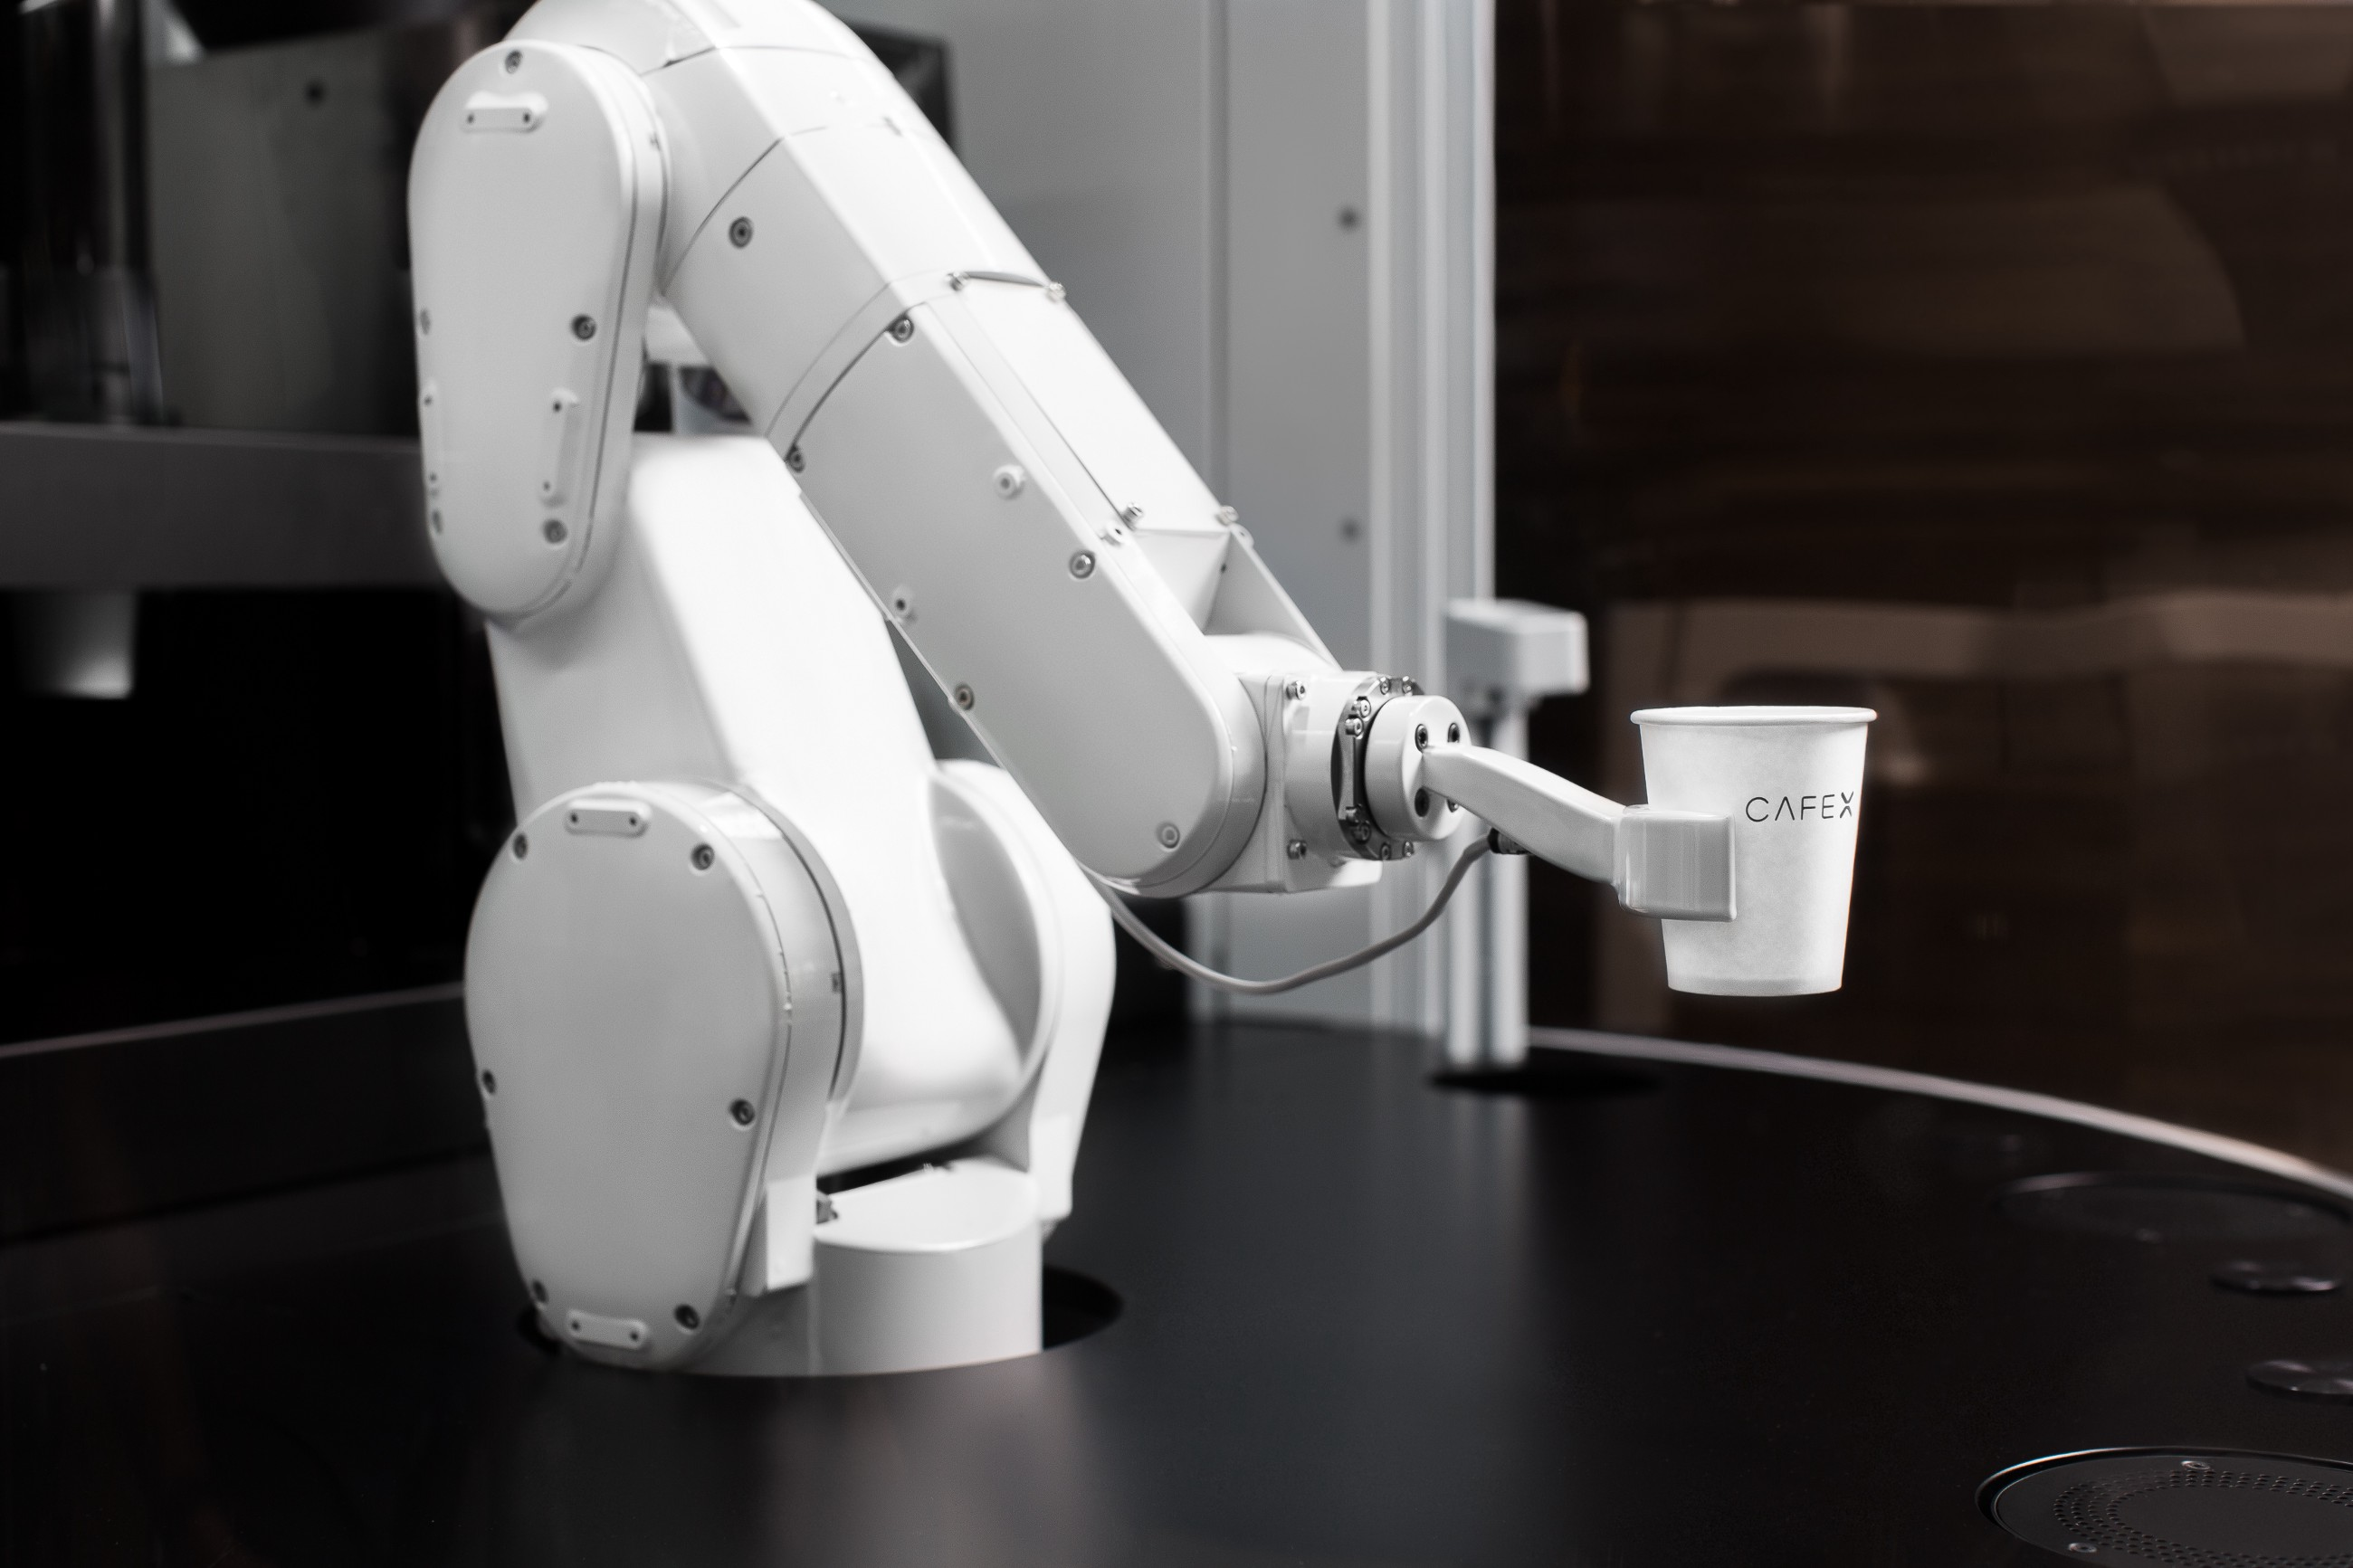 Robot arm holding a cup of coffee